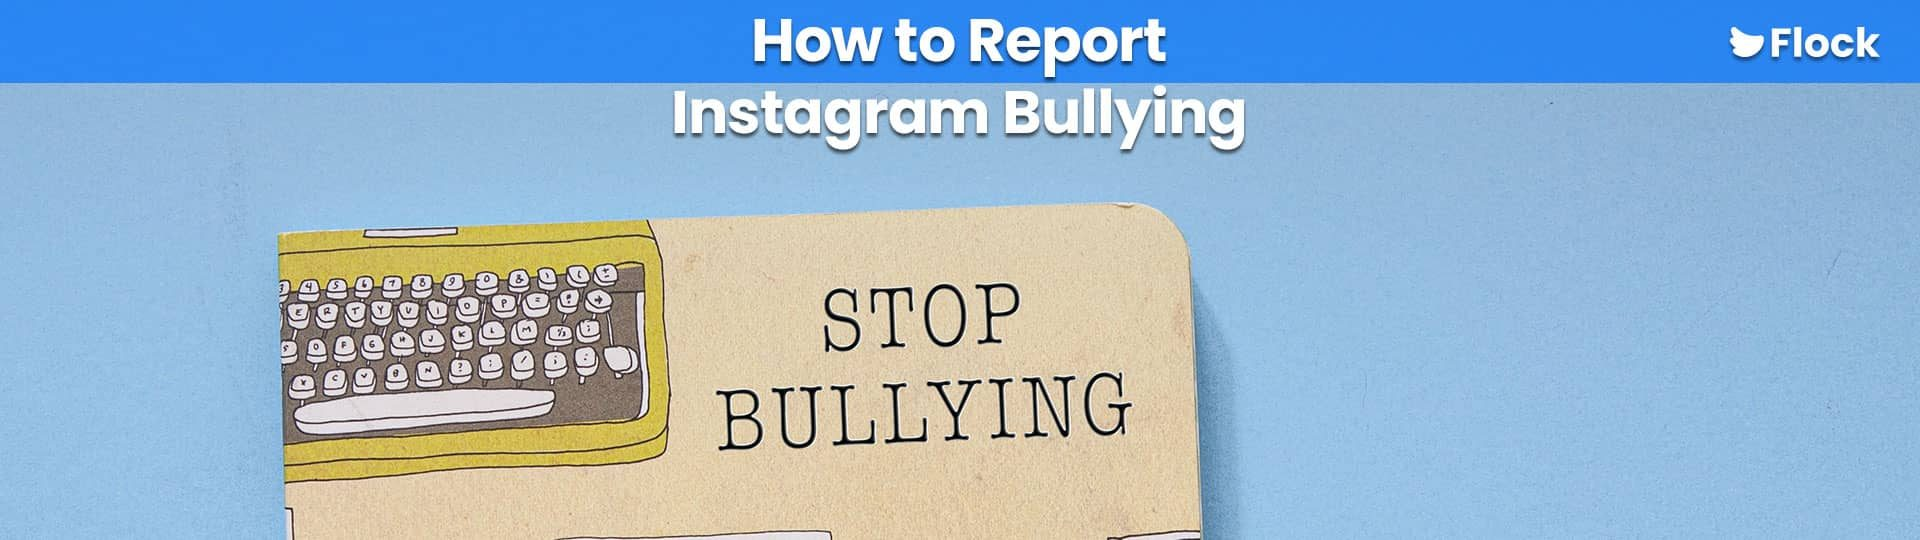 stop instagram bullying featured image